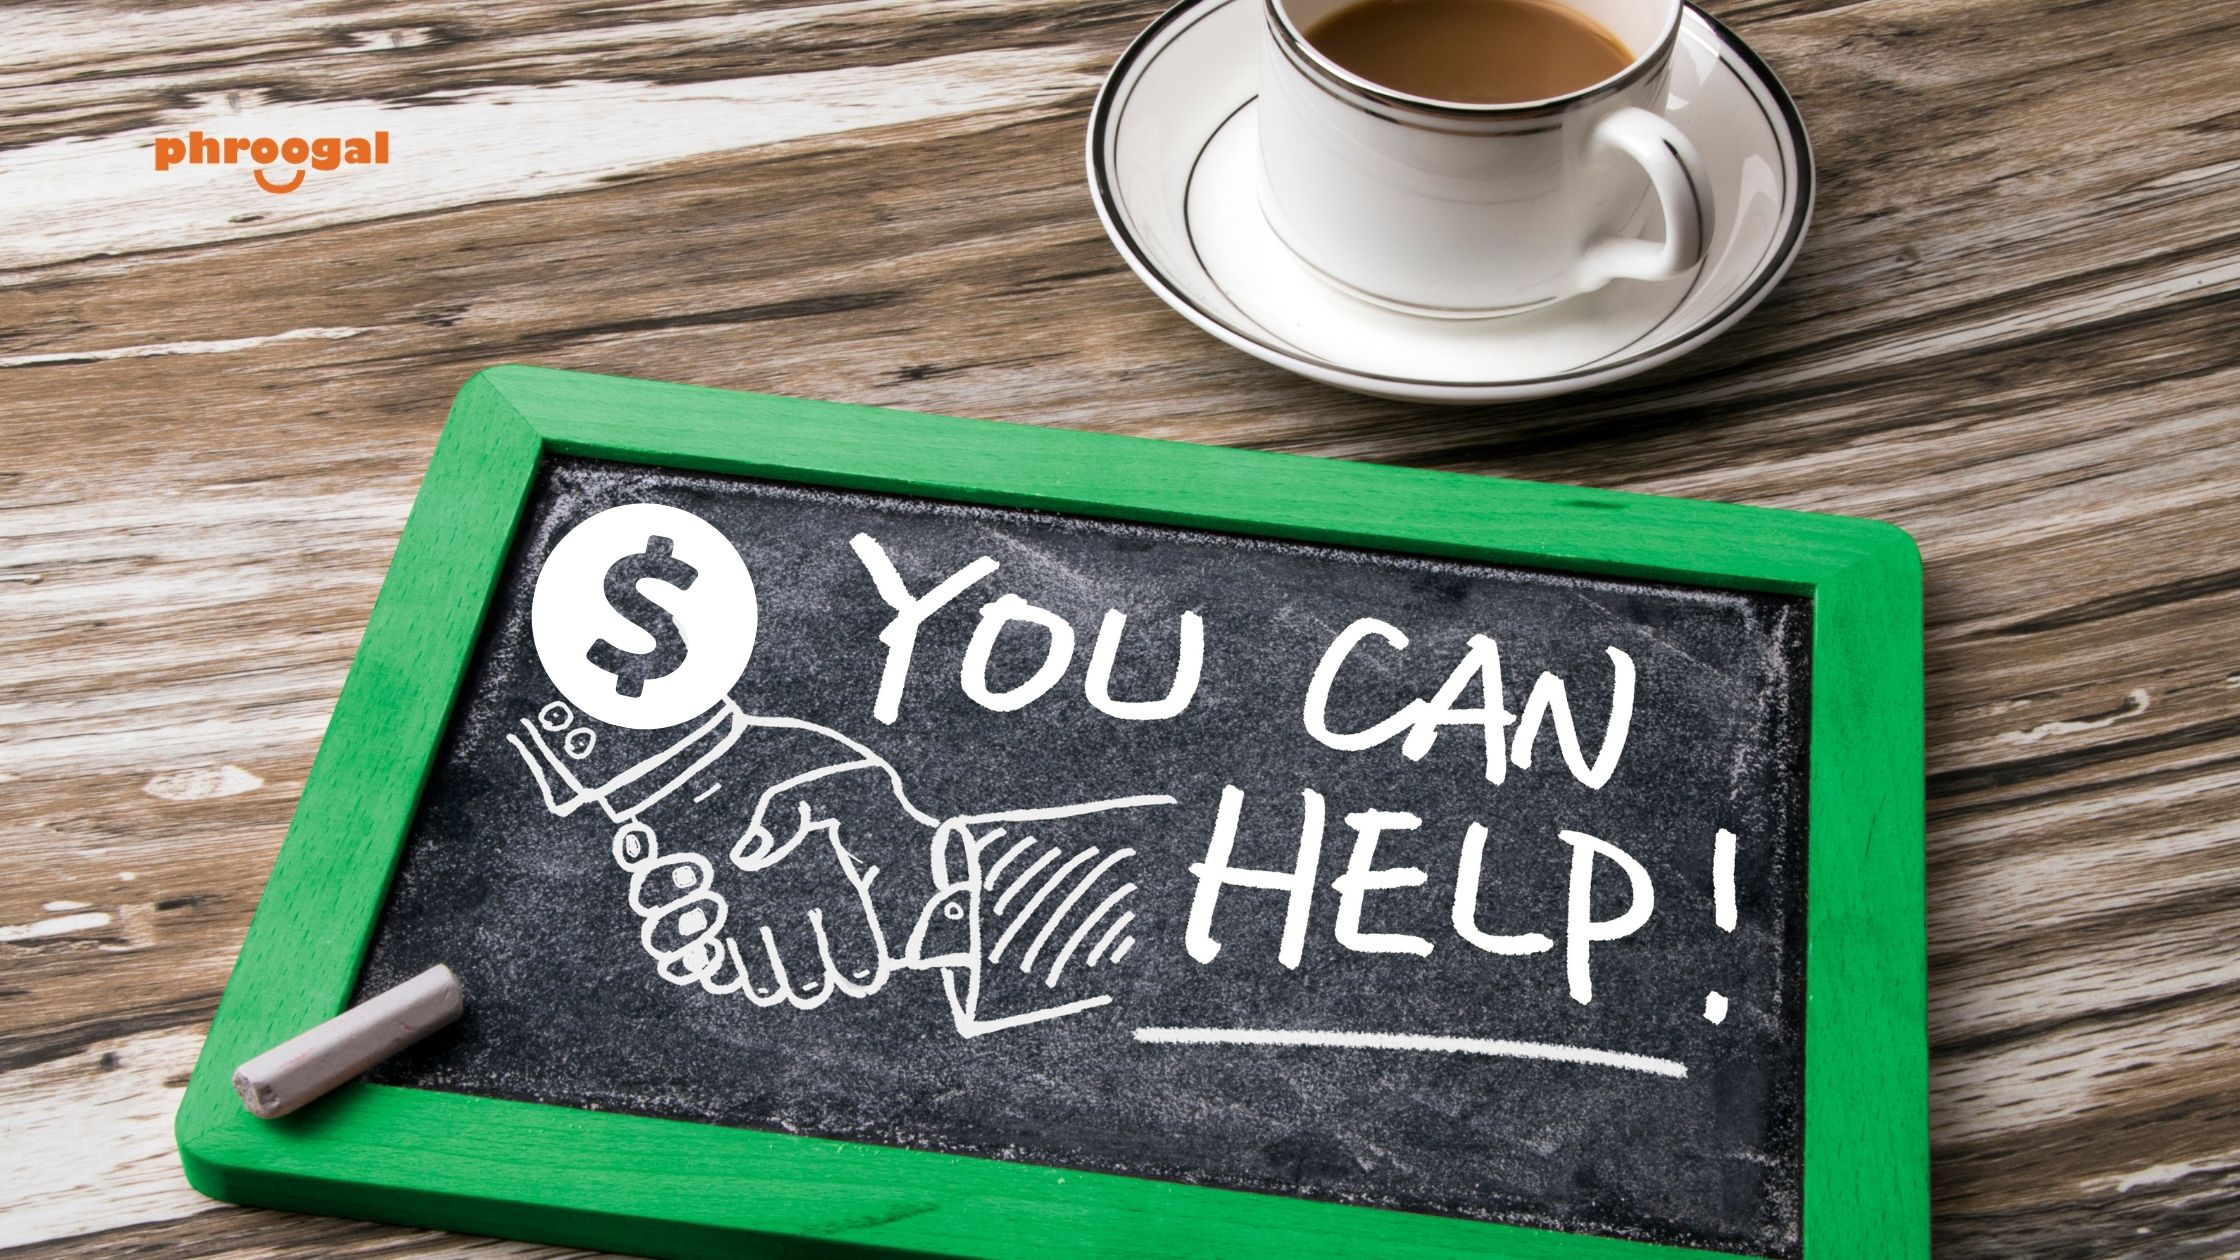 Ways to Make Money While Helping Others